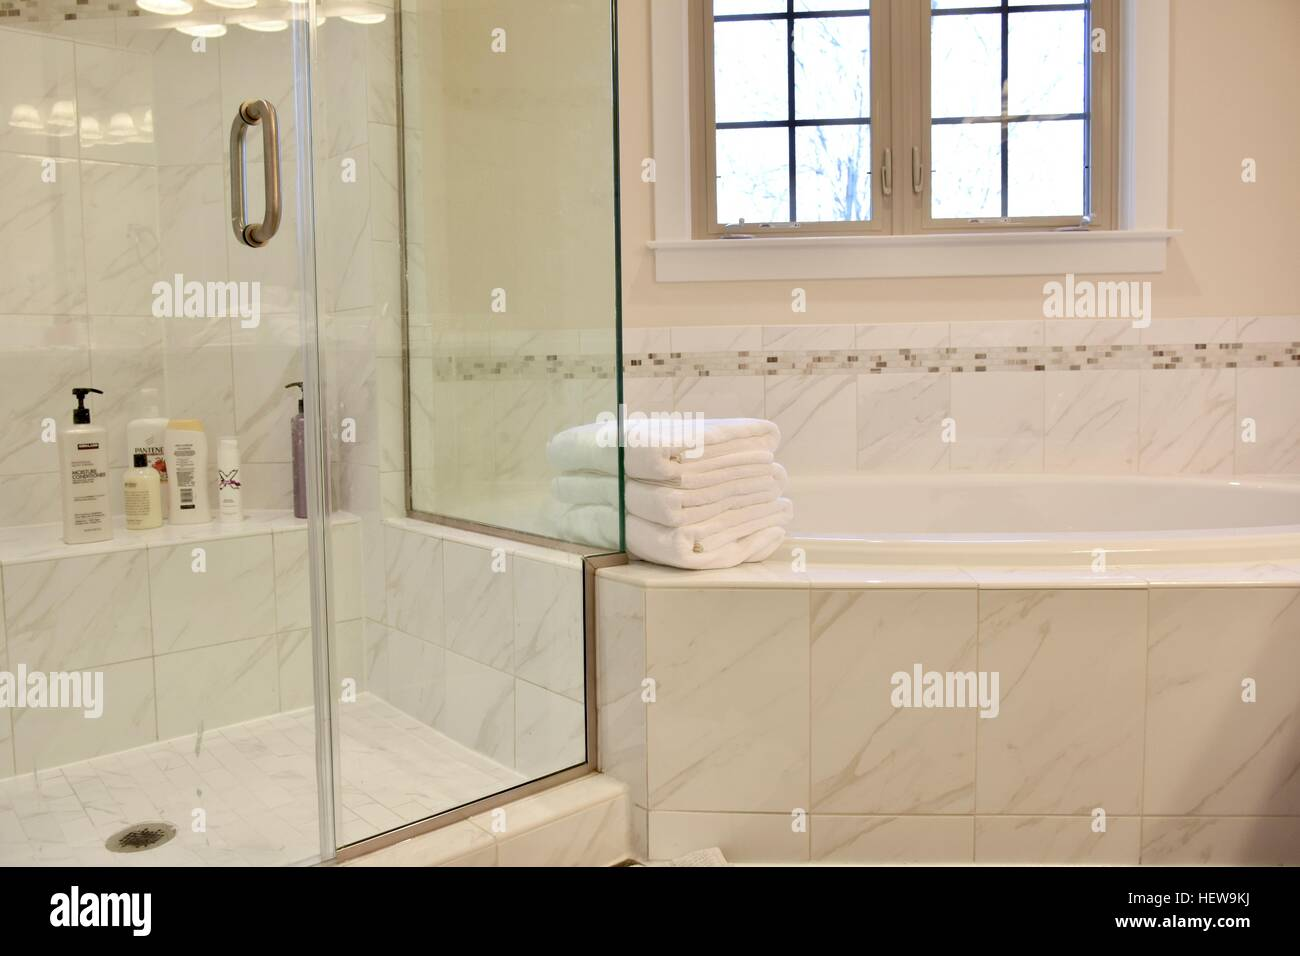 A Luxury White Marble Bathroom In A Modern Home Stock Photo Alamy